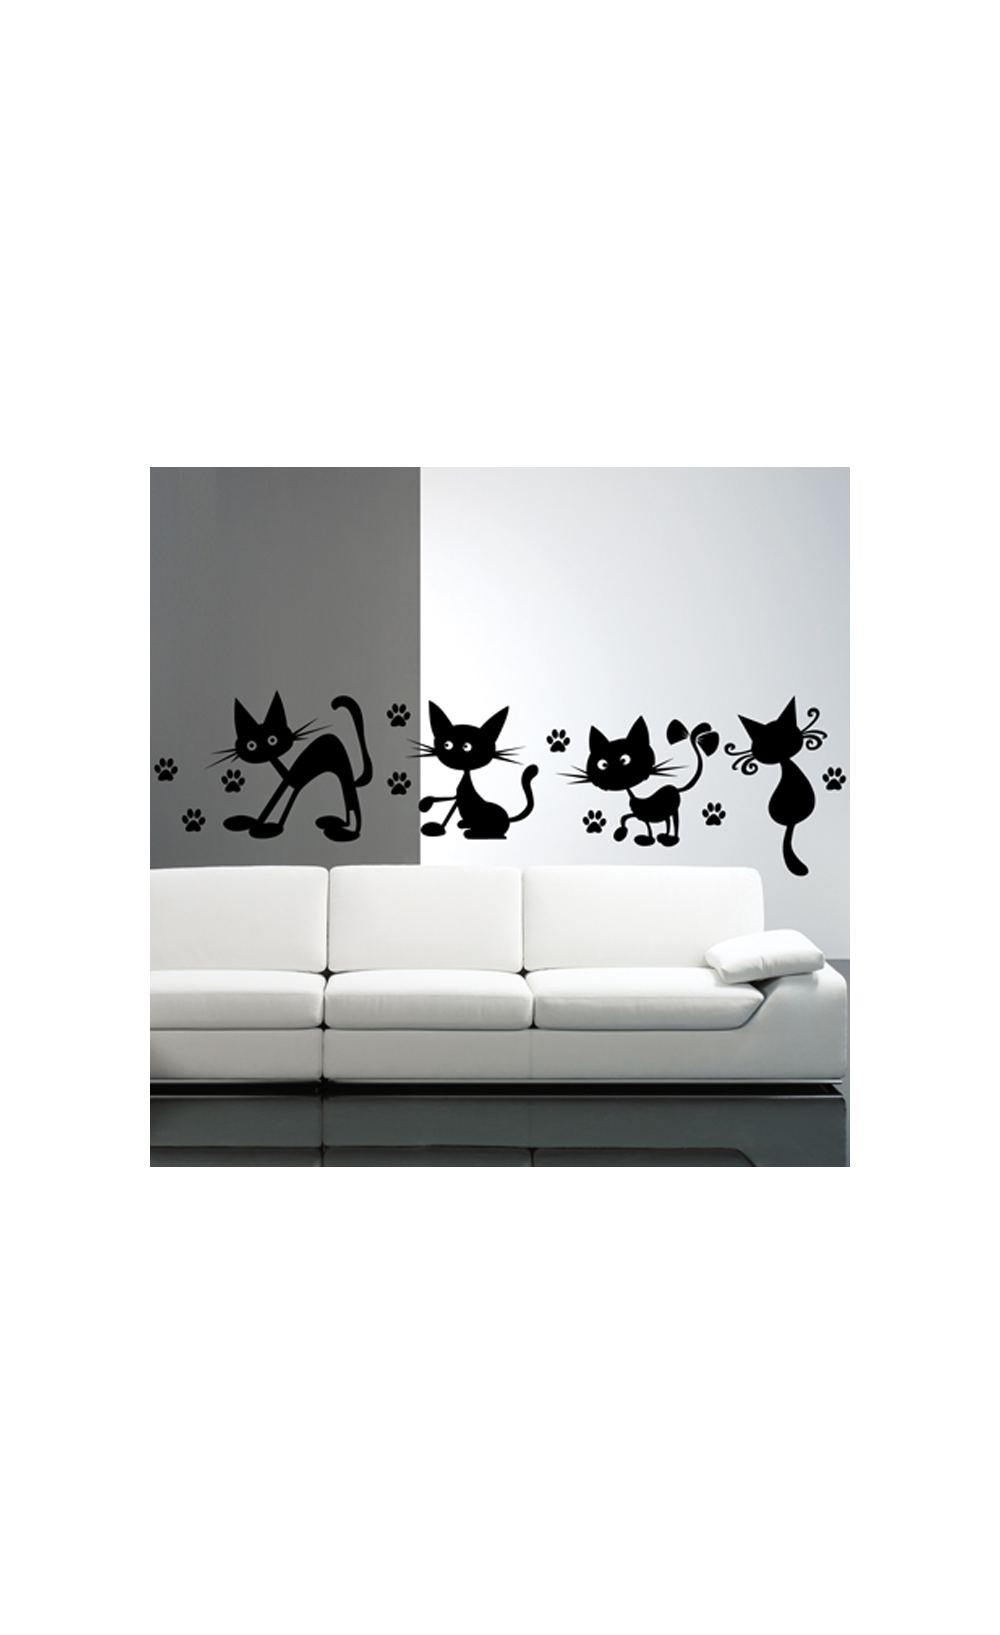 sticker mural pour d corer son int rieur petit prix mod le 4 petits chats coquins. Black Bedroom Furniture Sets. Home Design Ideas